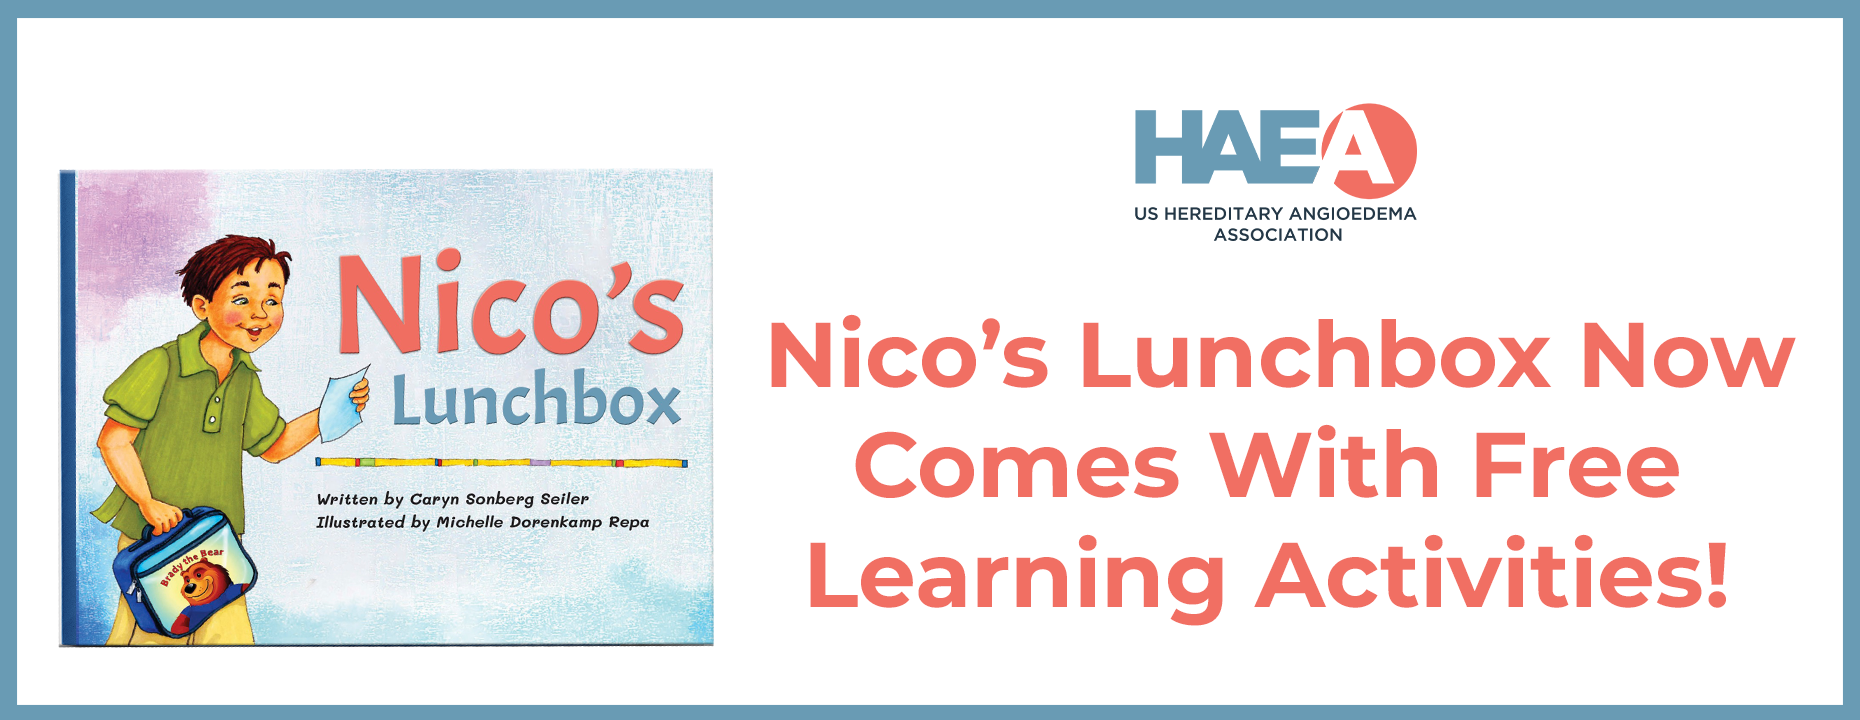 Nico's Lunchbox Now Comes With Free Learning Activities